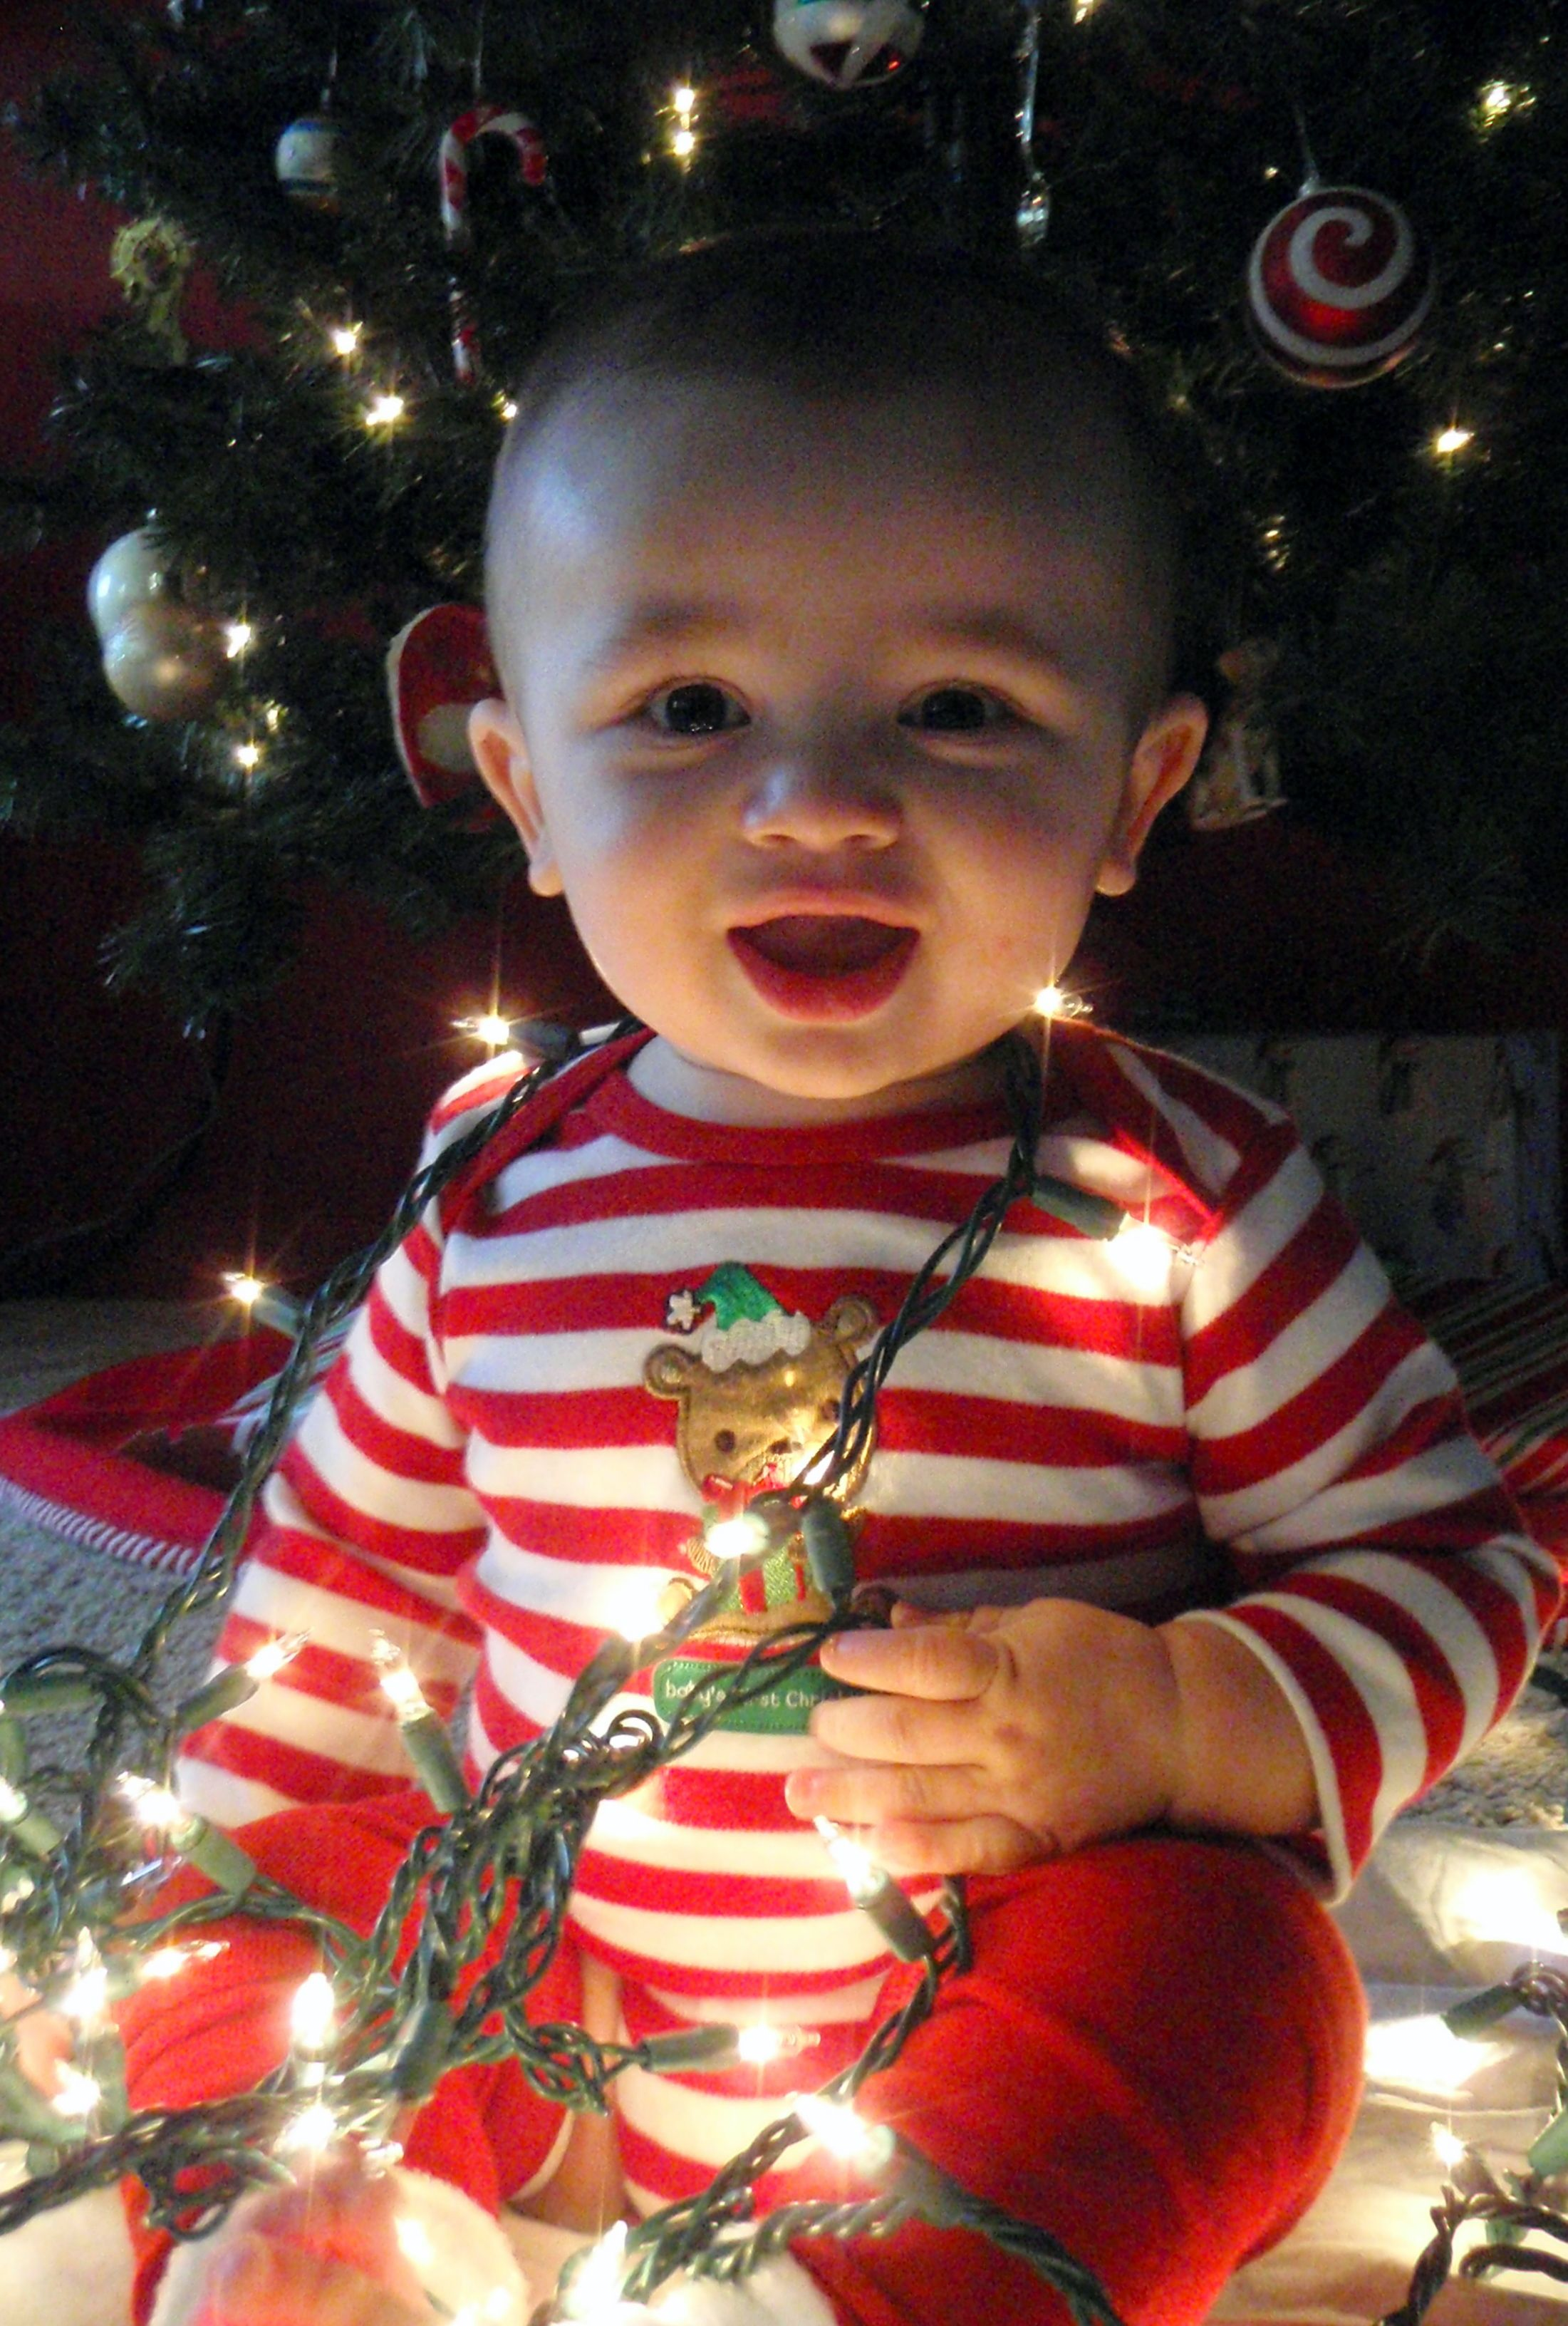 Baby S First Christmas Christmas Baby Pictures Baby Christmas Photos Christmas Baby